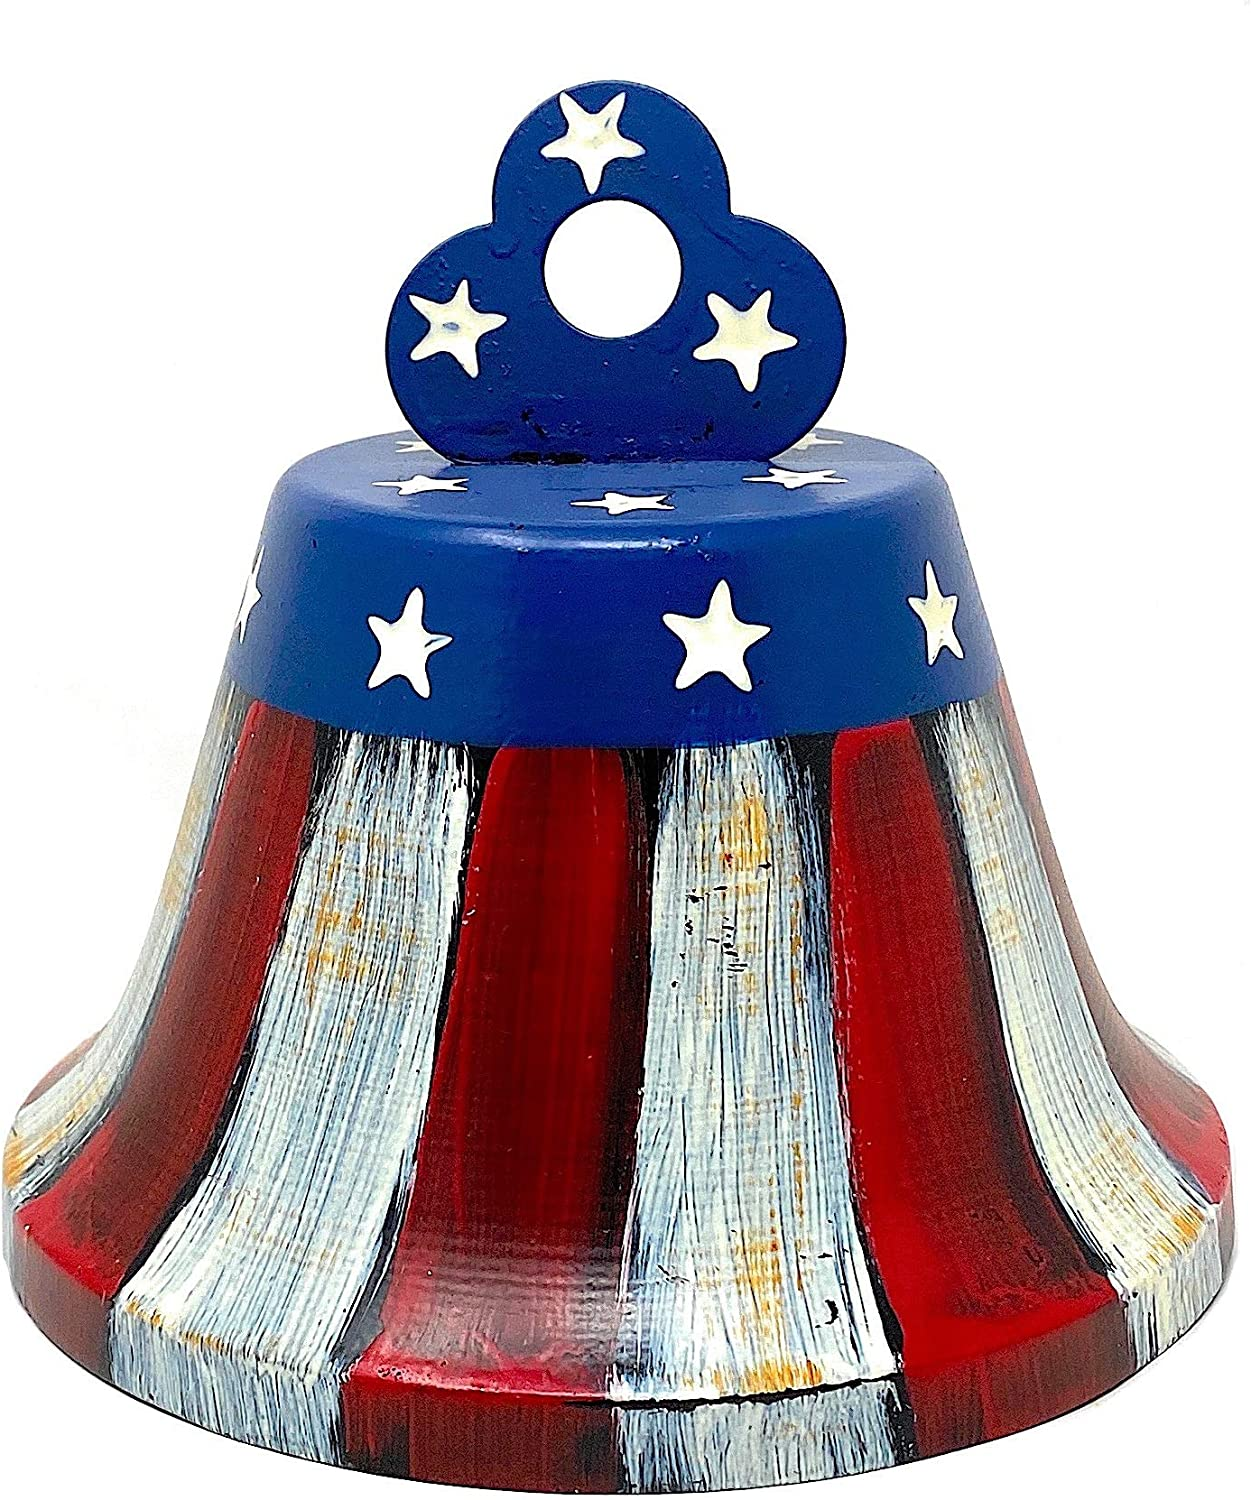 "Patriotic Bell Americana Hanging Tabletop Counter Shelf Ornament Red White & Blue 6"" x 6.5"""